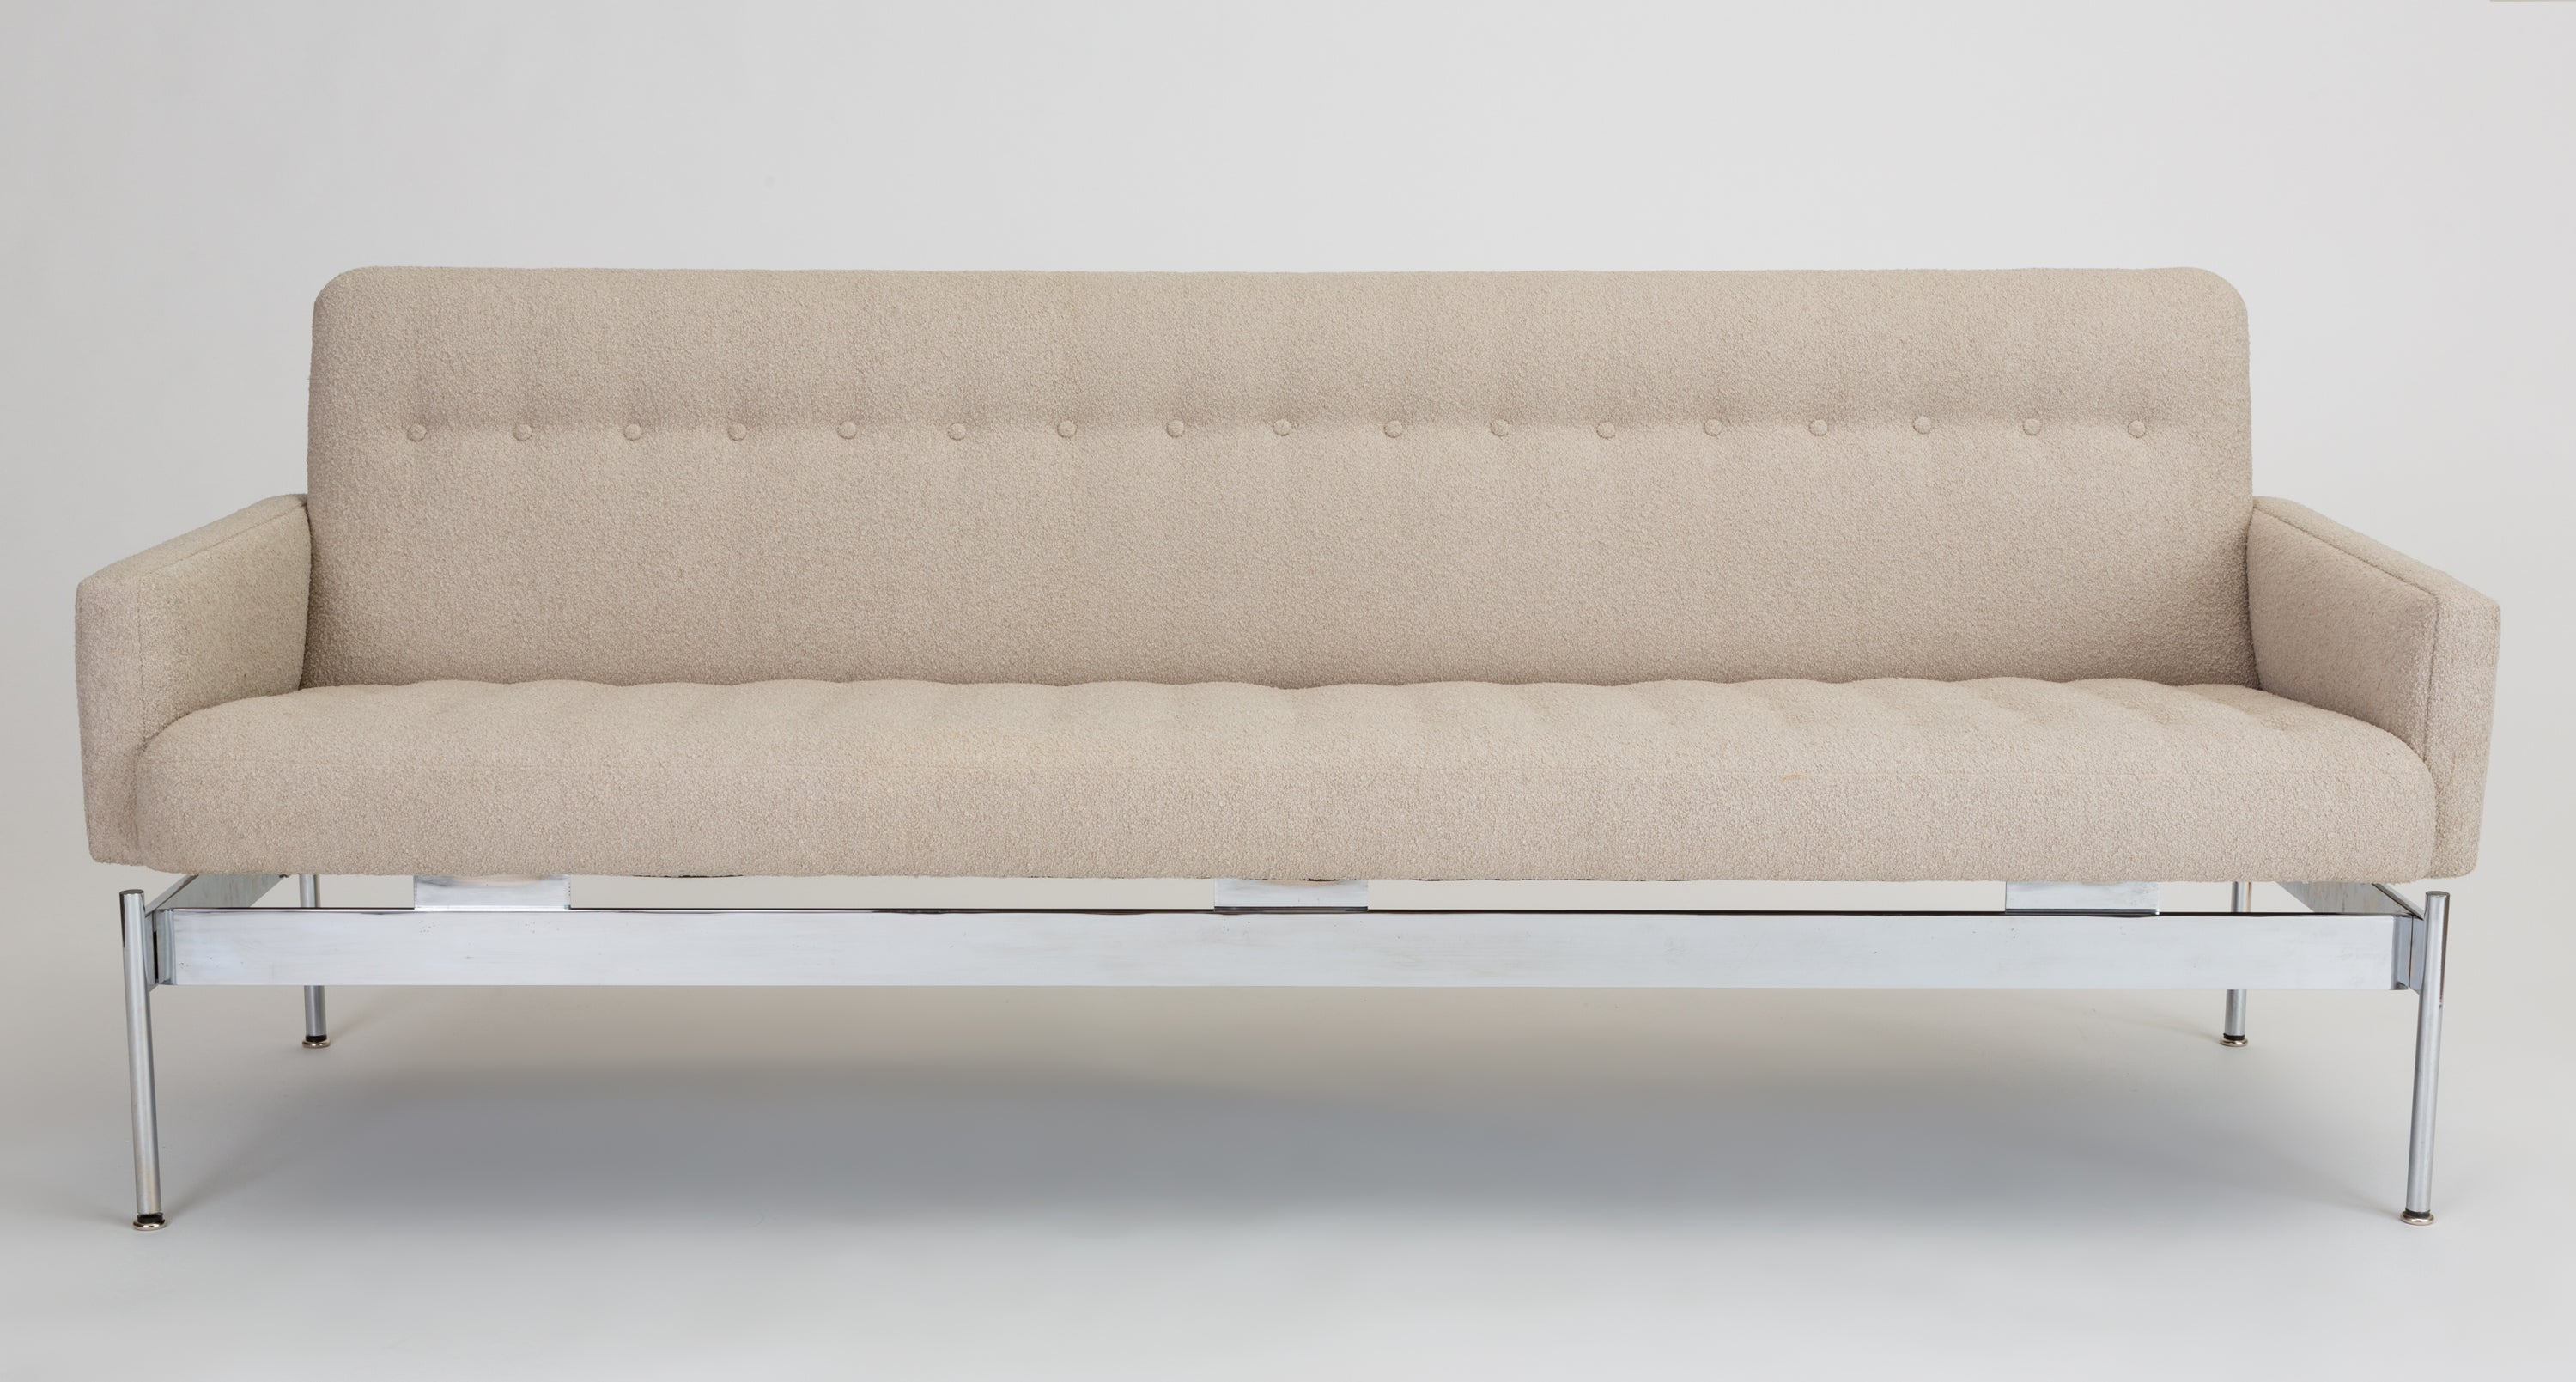 Magnificent Mid Century Modern Tufted Boucle Sofa With Chrome Base Spiritservingveterans Wood Chair Design Ideas Spiritservingveteransorg